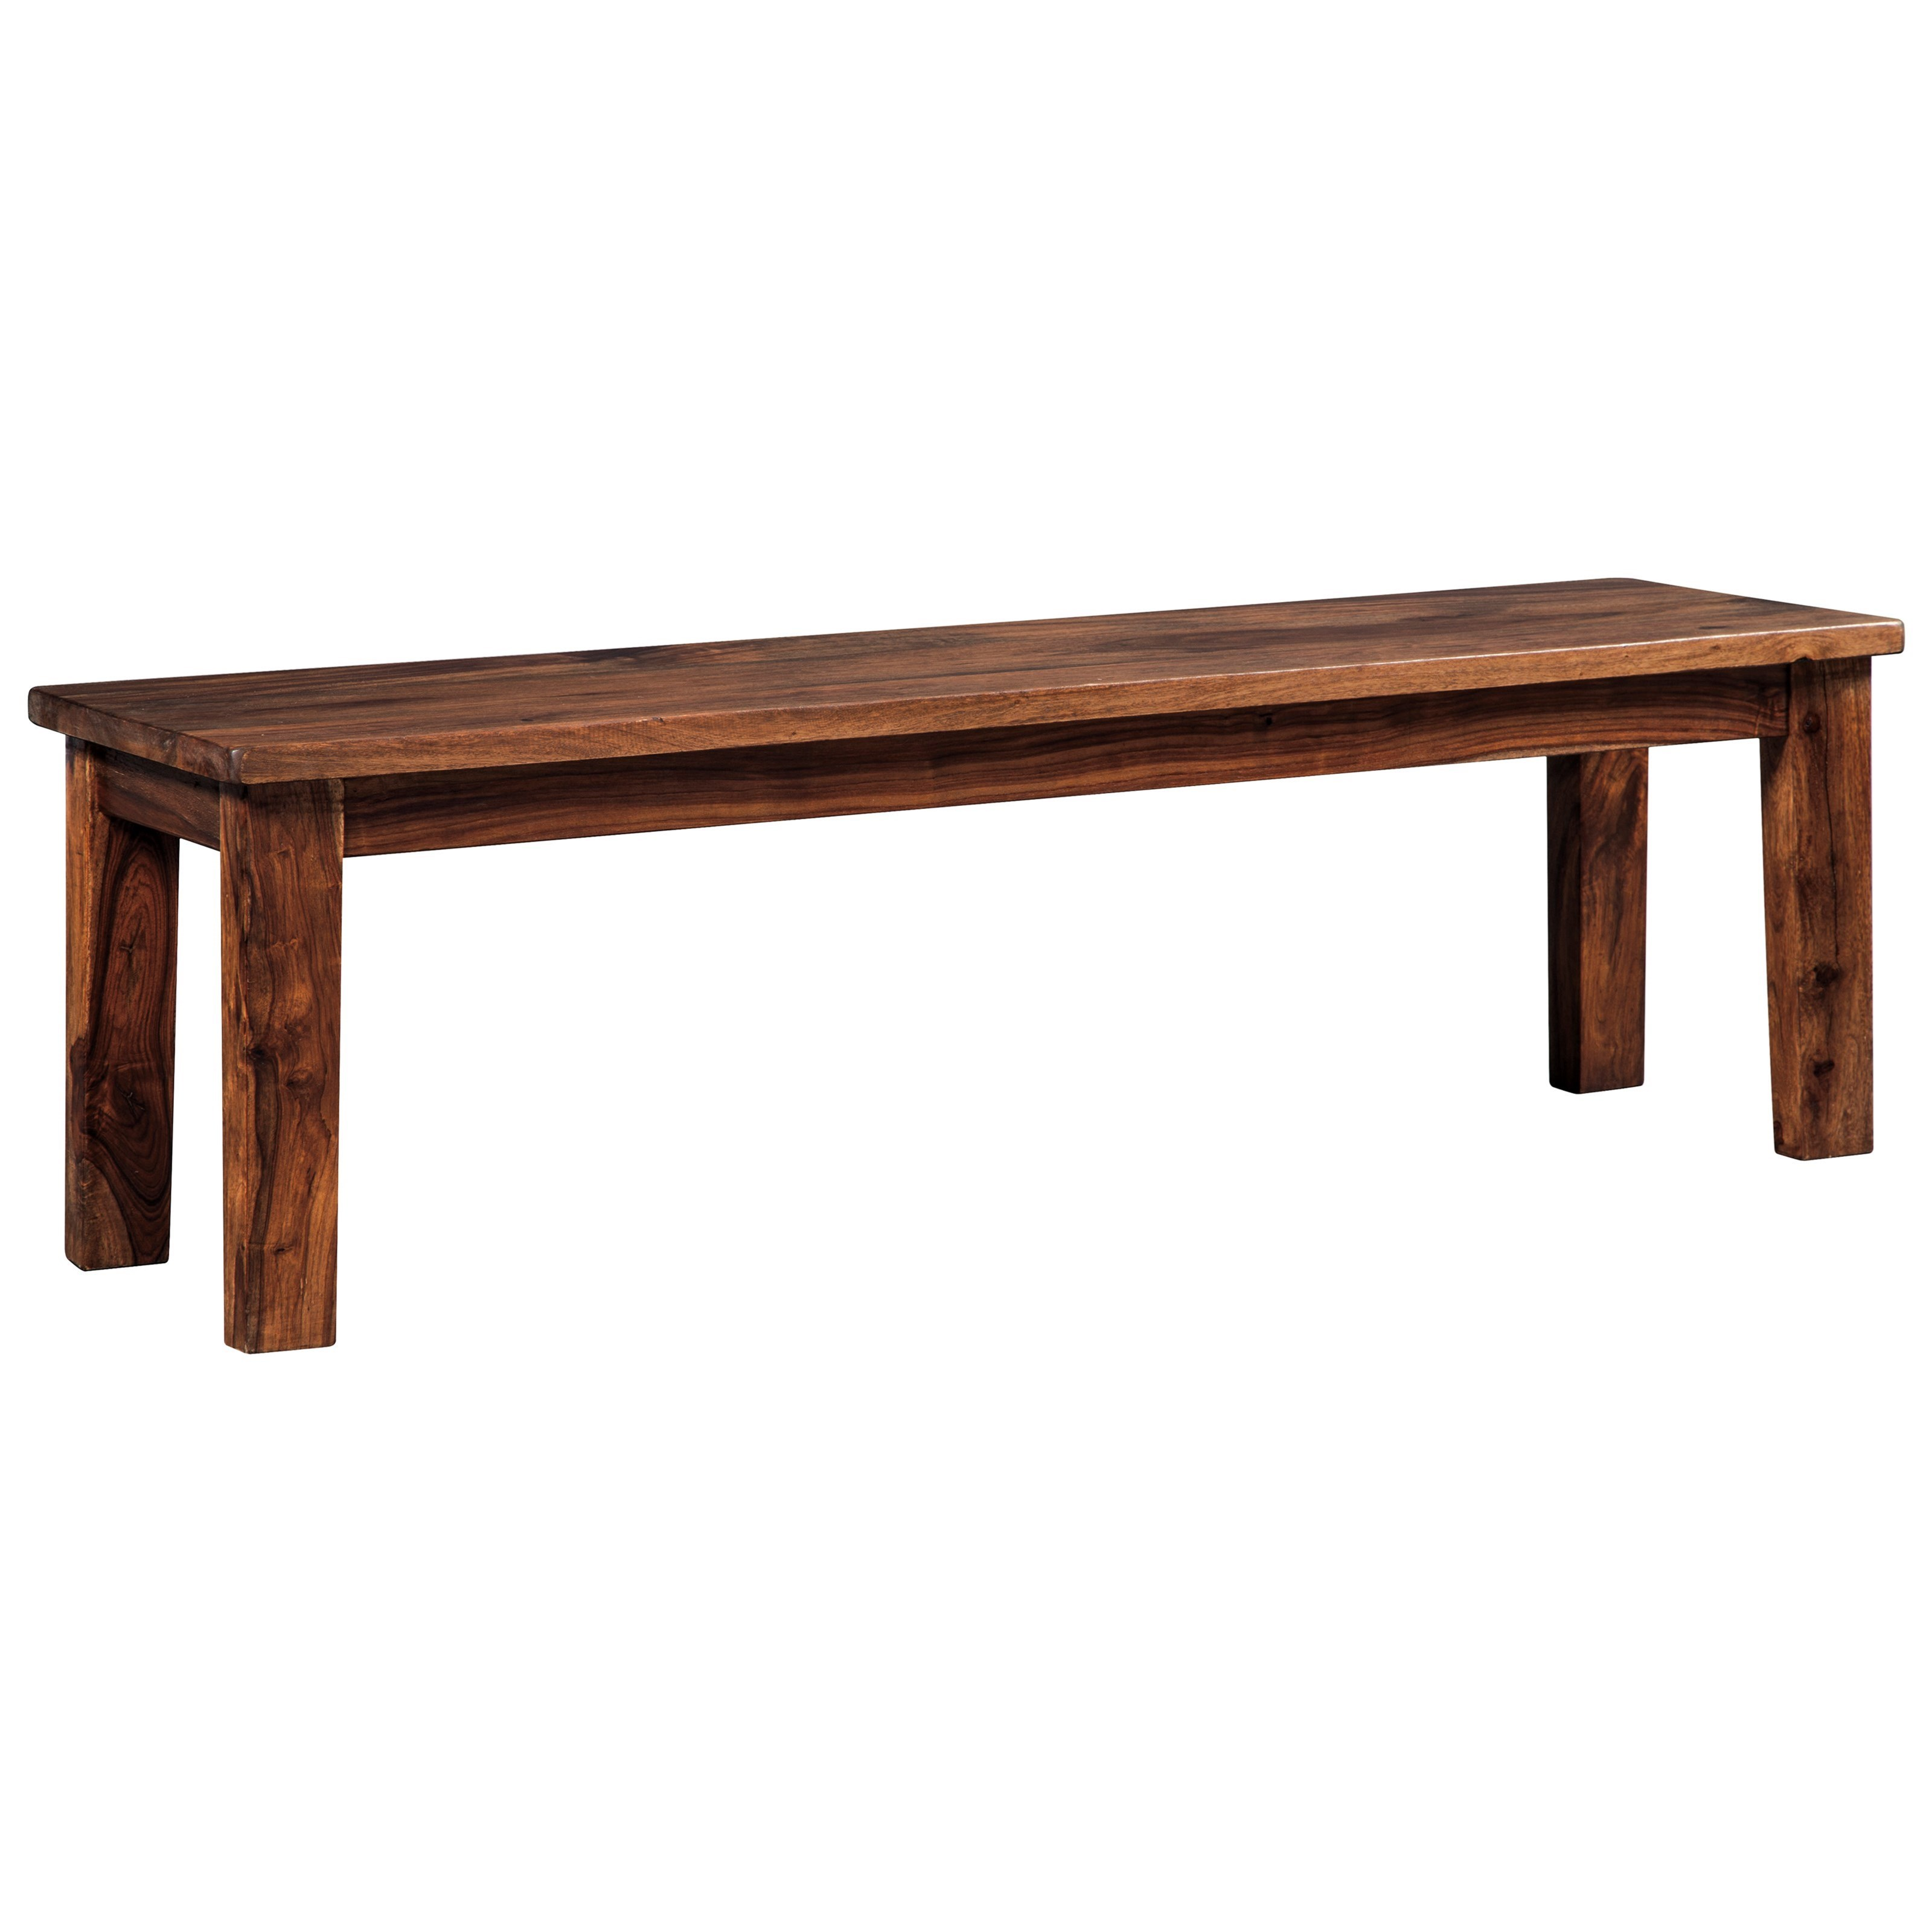 Signature Design by Ashley Manishore Dining Room Bench - Item Number: D648-00